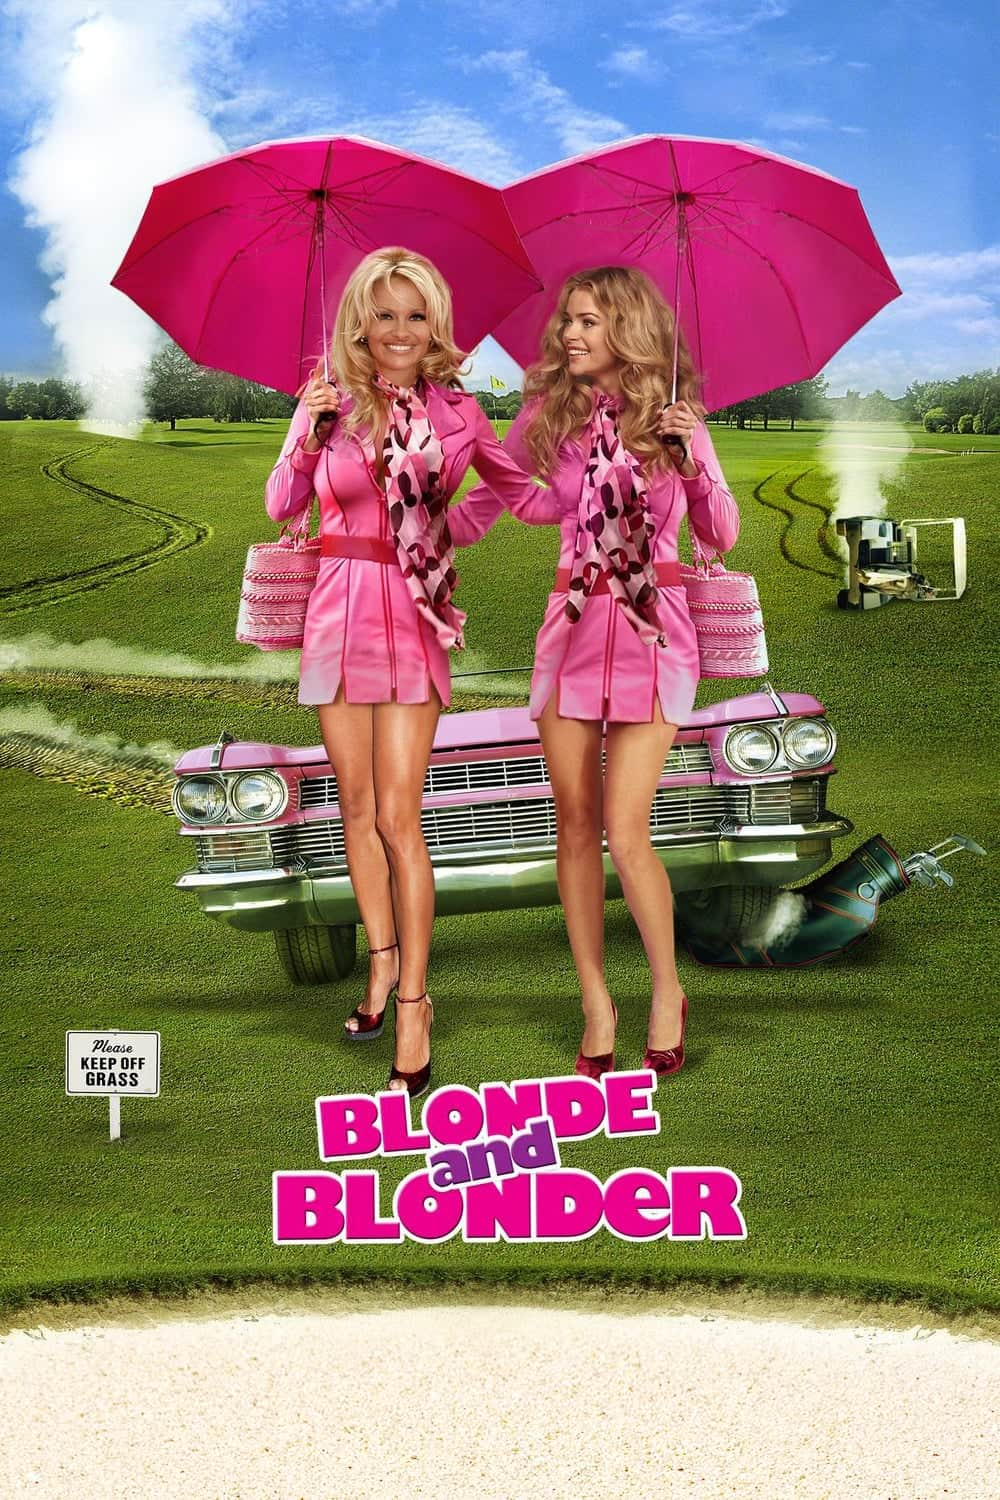 Blonde and Blonder, 2007